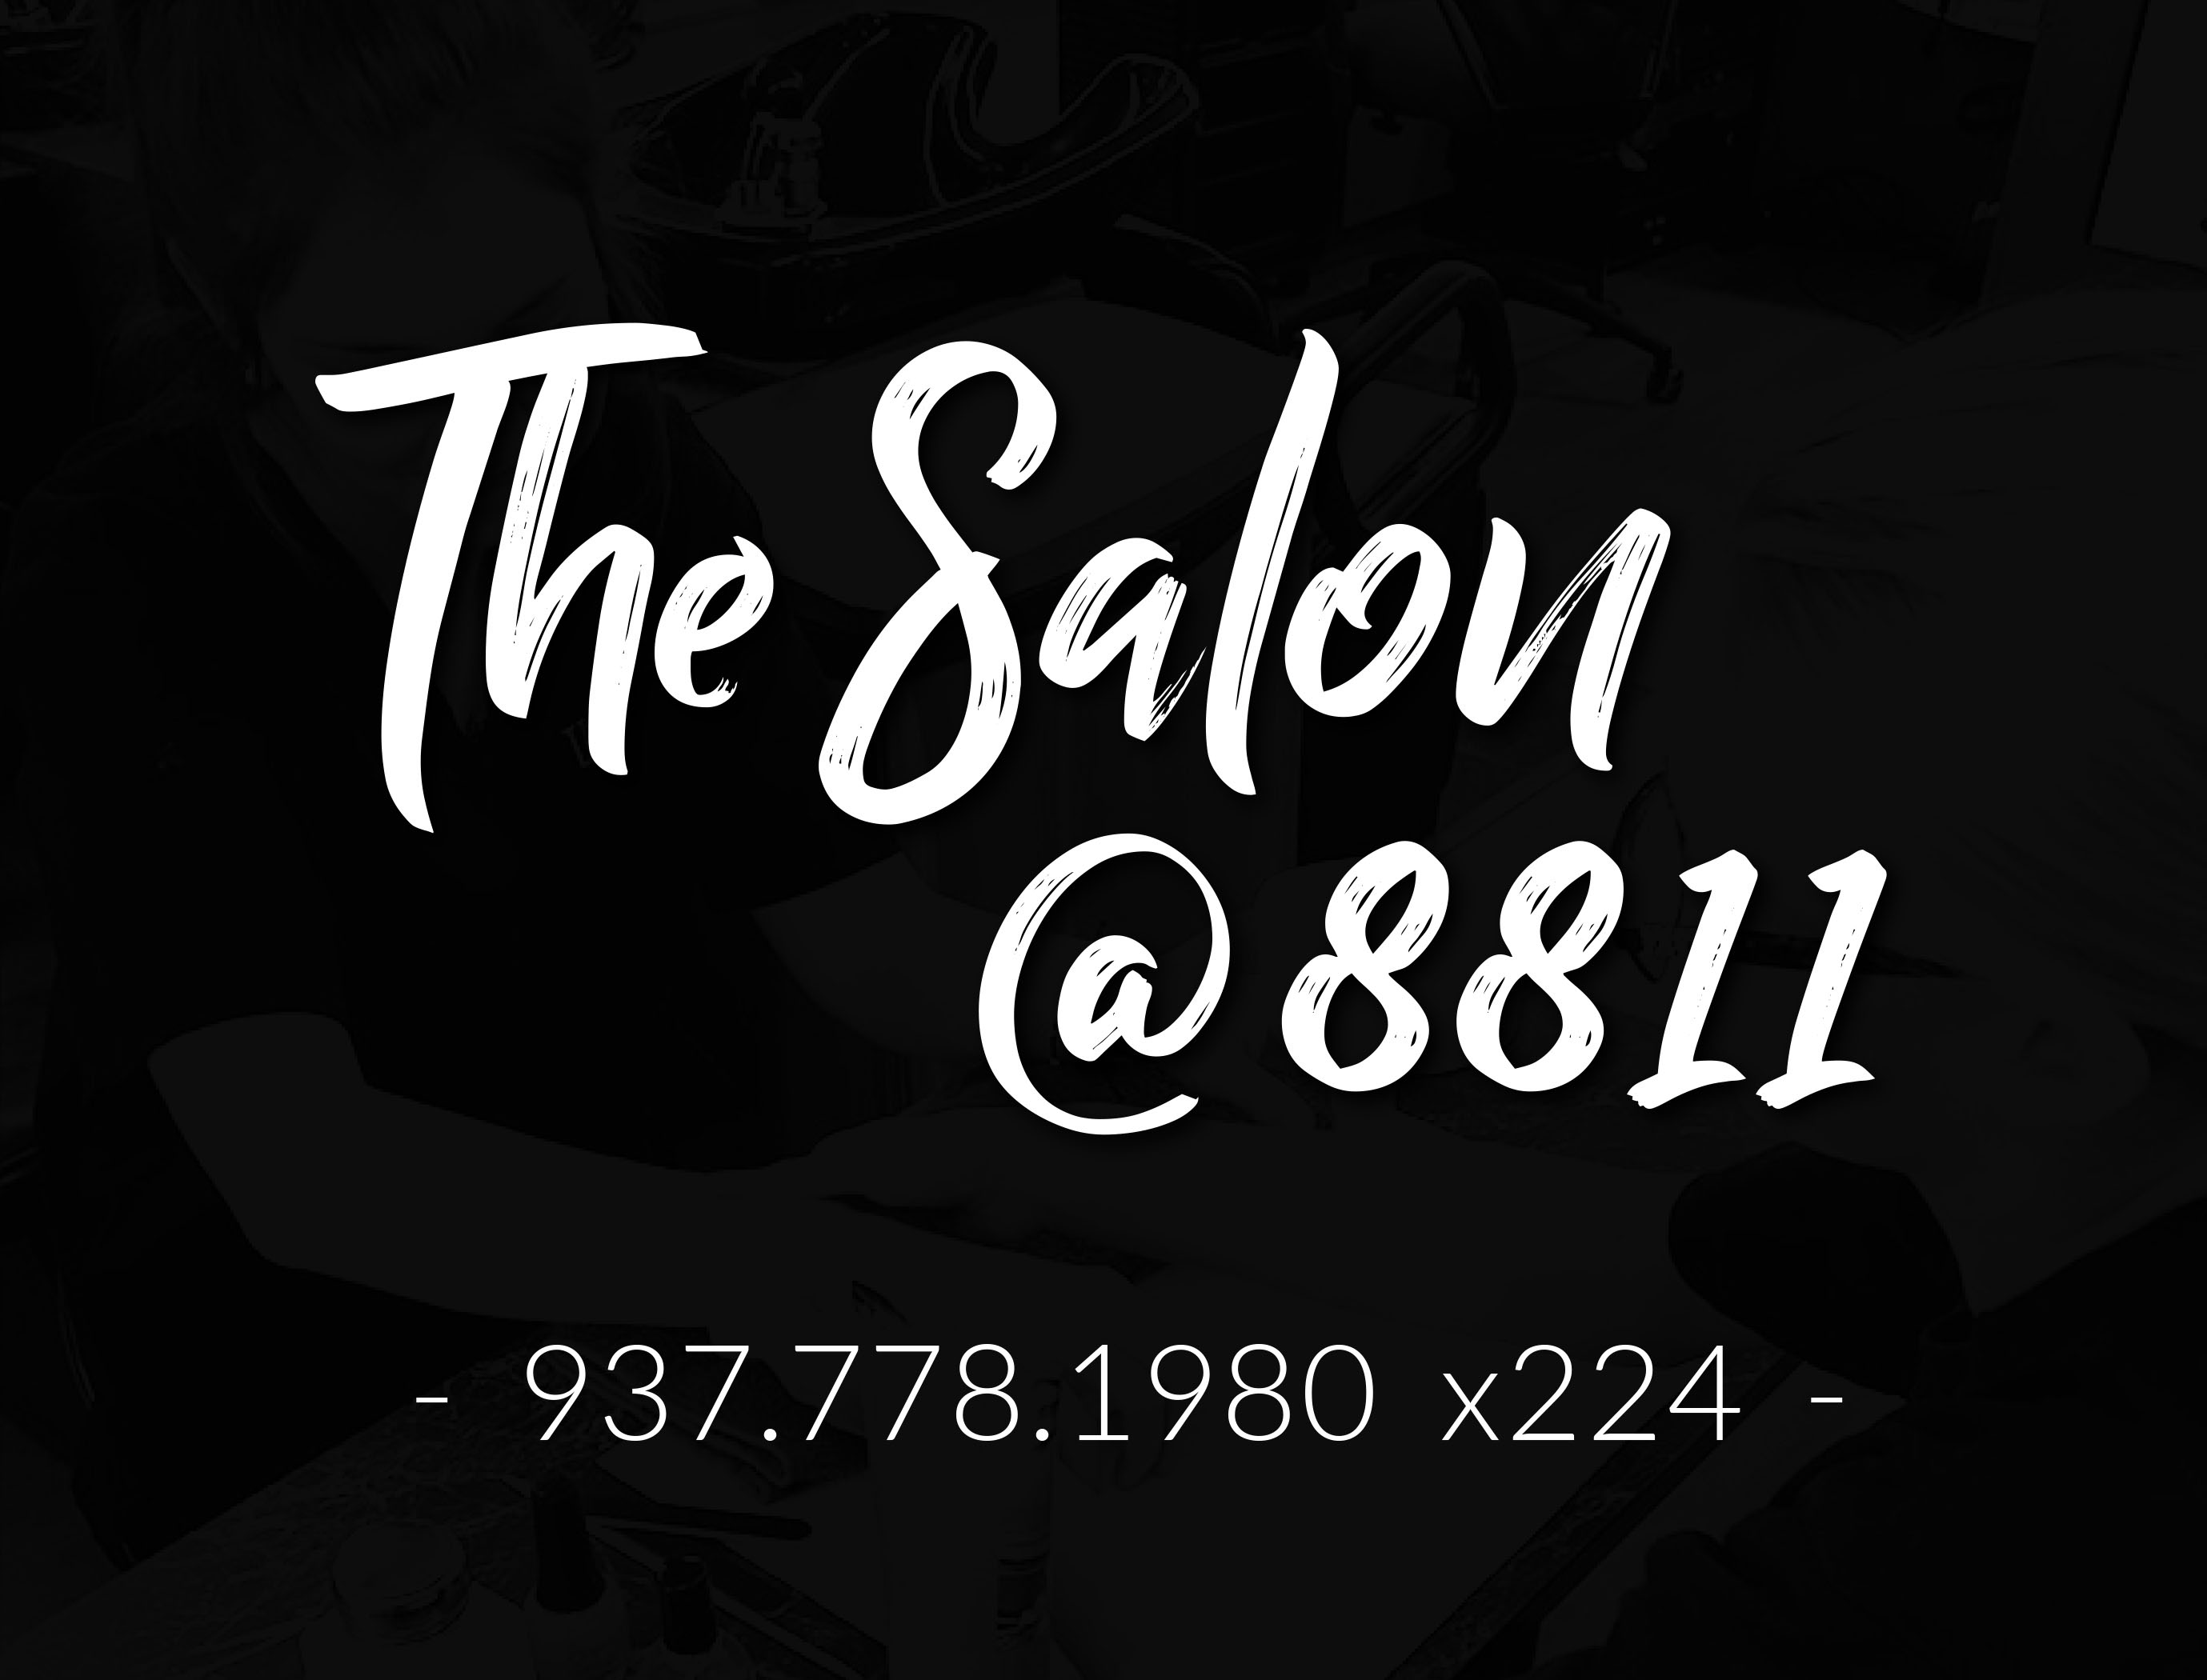 The Salon@8811 Logo